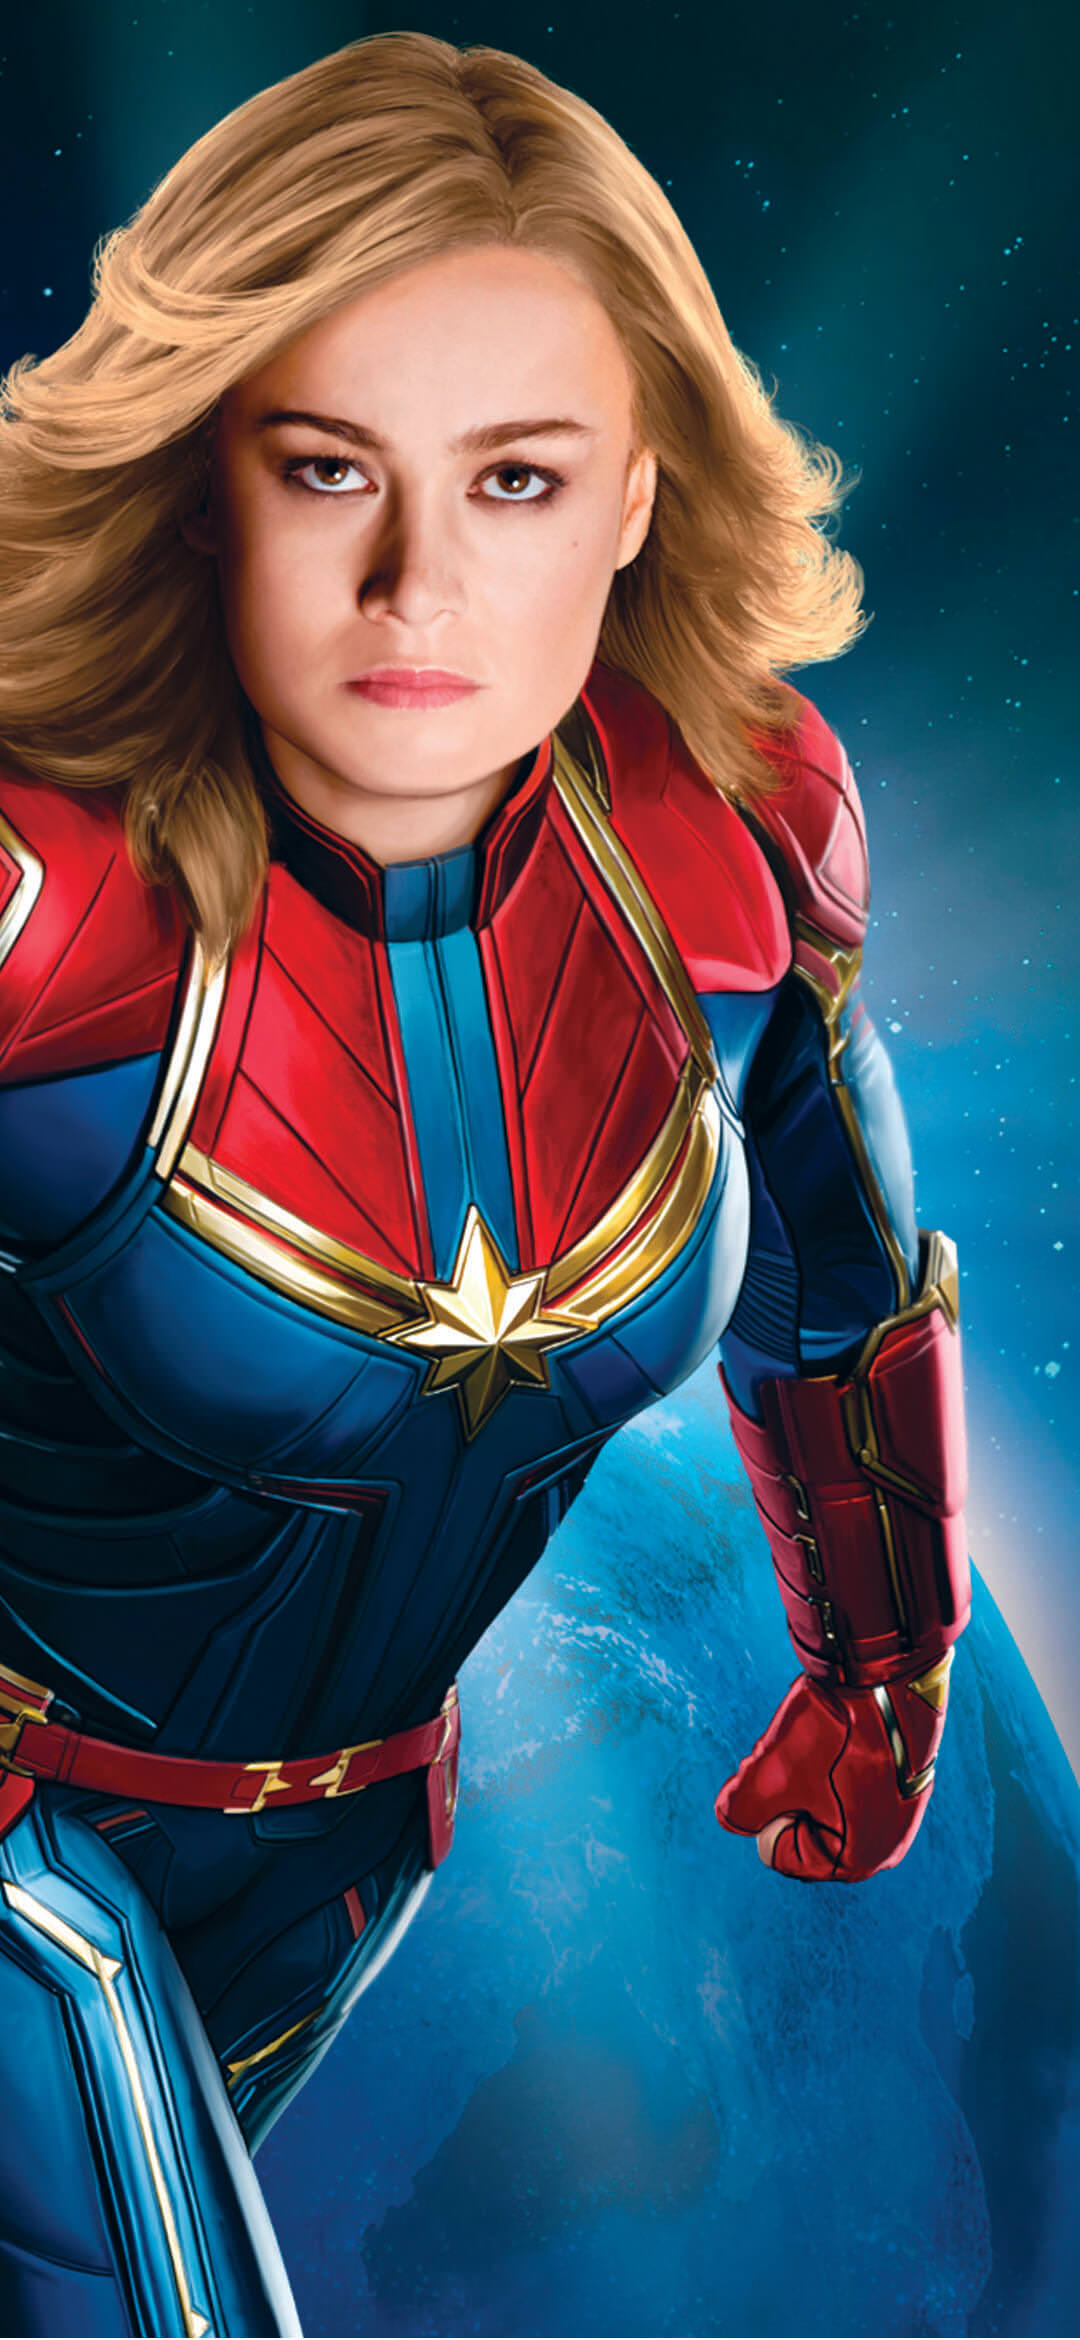 Captain Marvel Hd Wallpaper 1080 2340 Webrfree